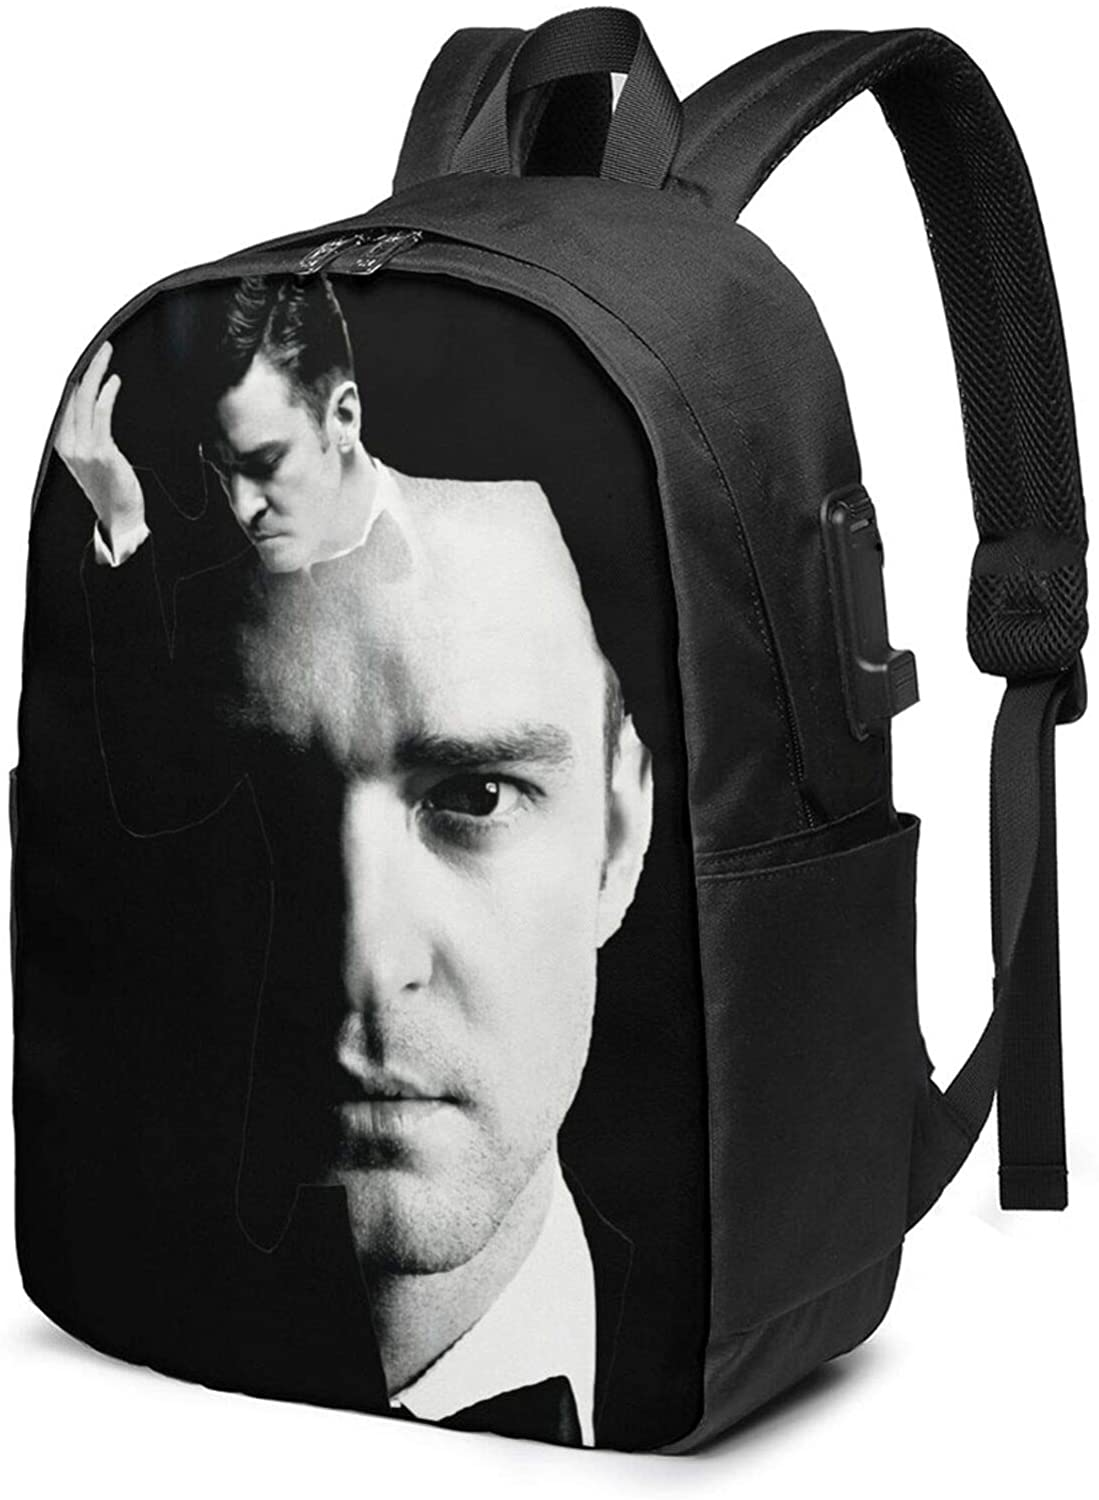 CHENYAMAY Justin Timberlake Fashionable and Durable Anti-Theft Laptop Backpack Travel Bag with USB Charging Port 17 Inches, Suitable for Men and Women